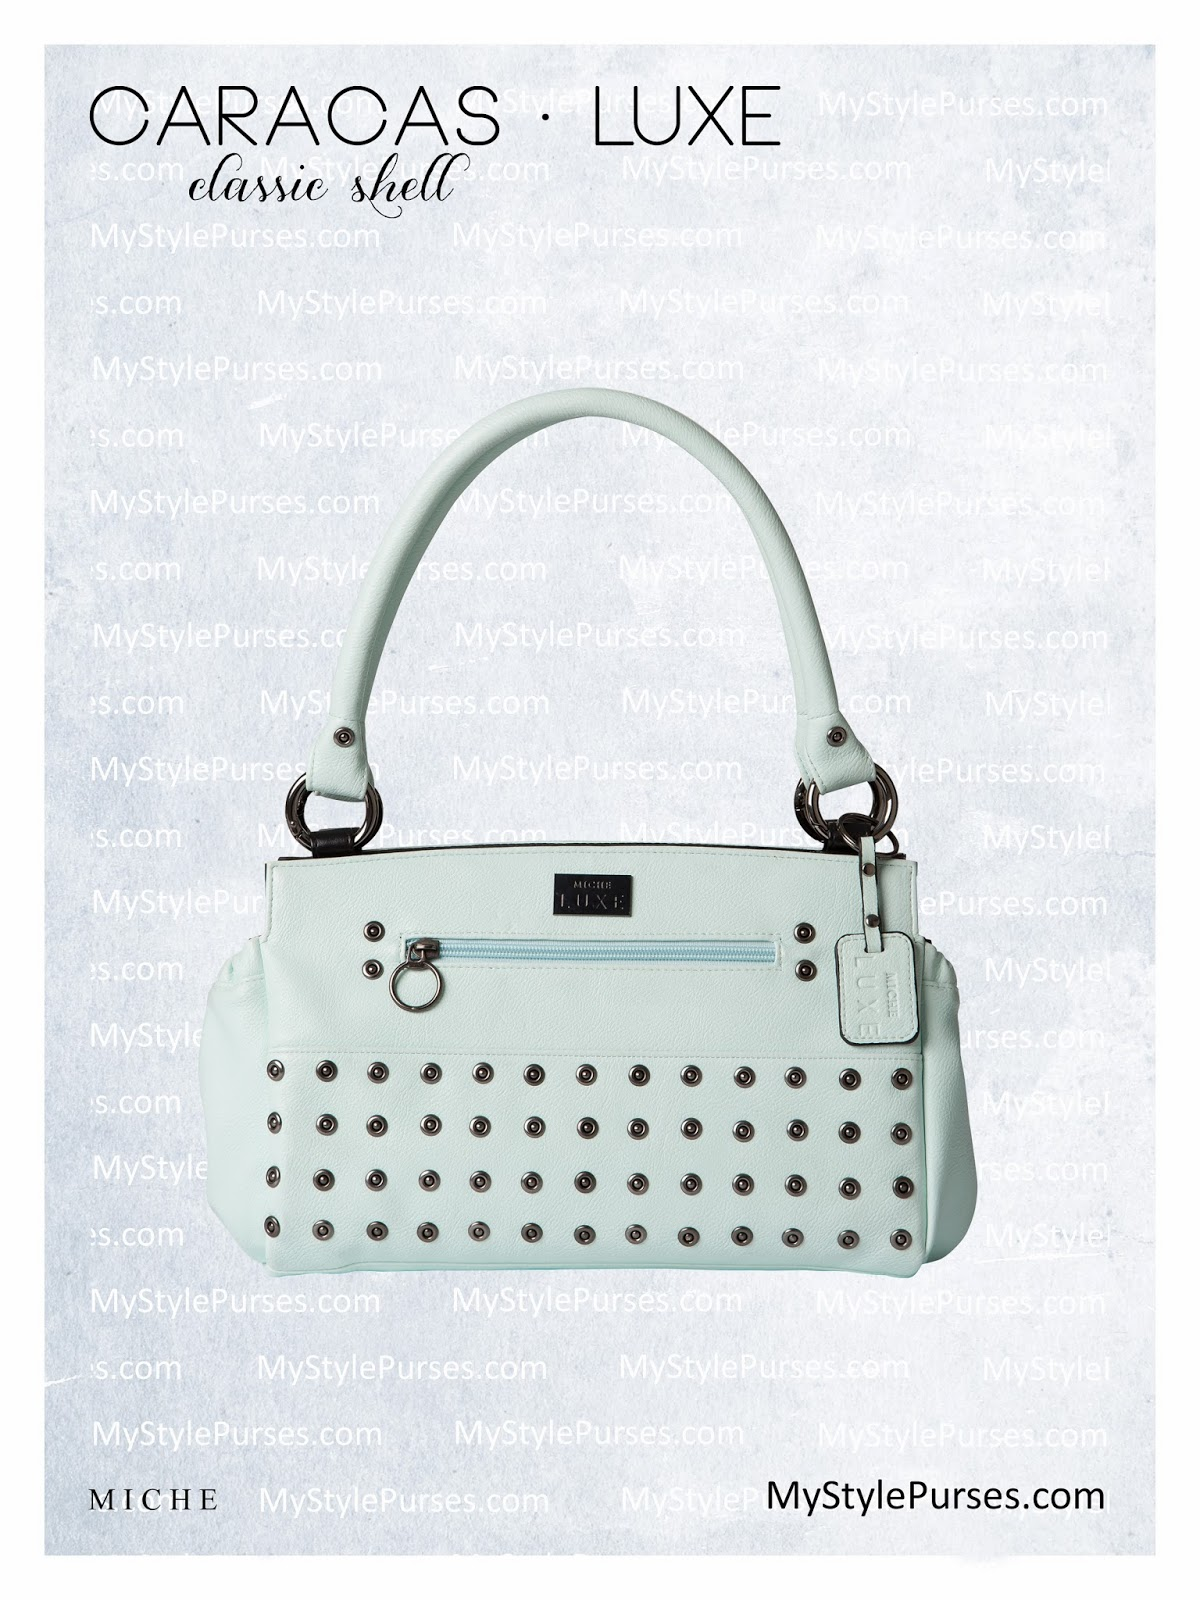 Miche Luxe Caracas Classic Shell | Shop MyStylePurses.com